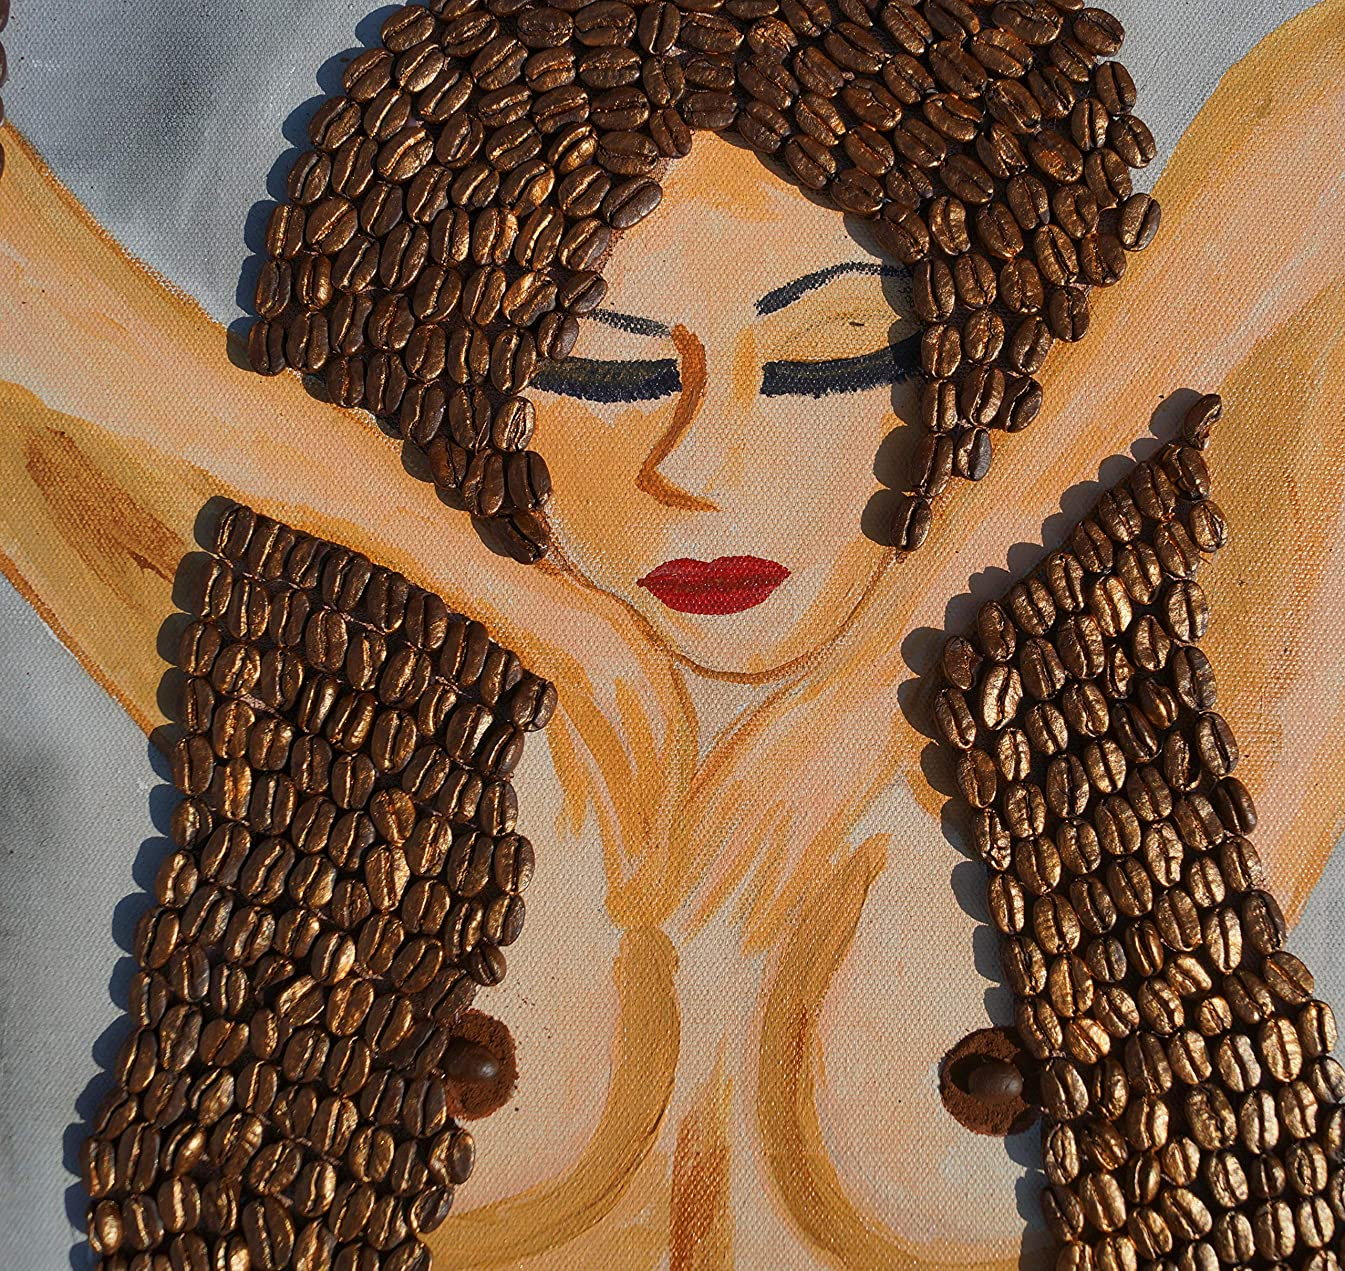 She, Drawing, Art, Watercolor Painting with Real Coffee Beans. 100% Handmade.